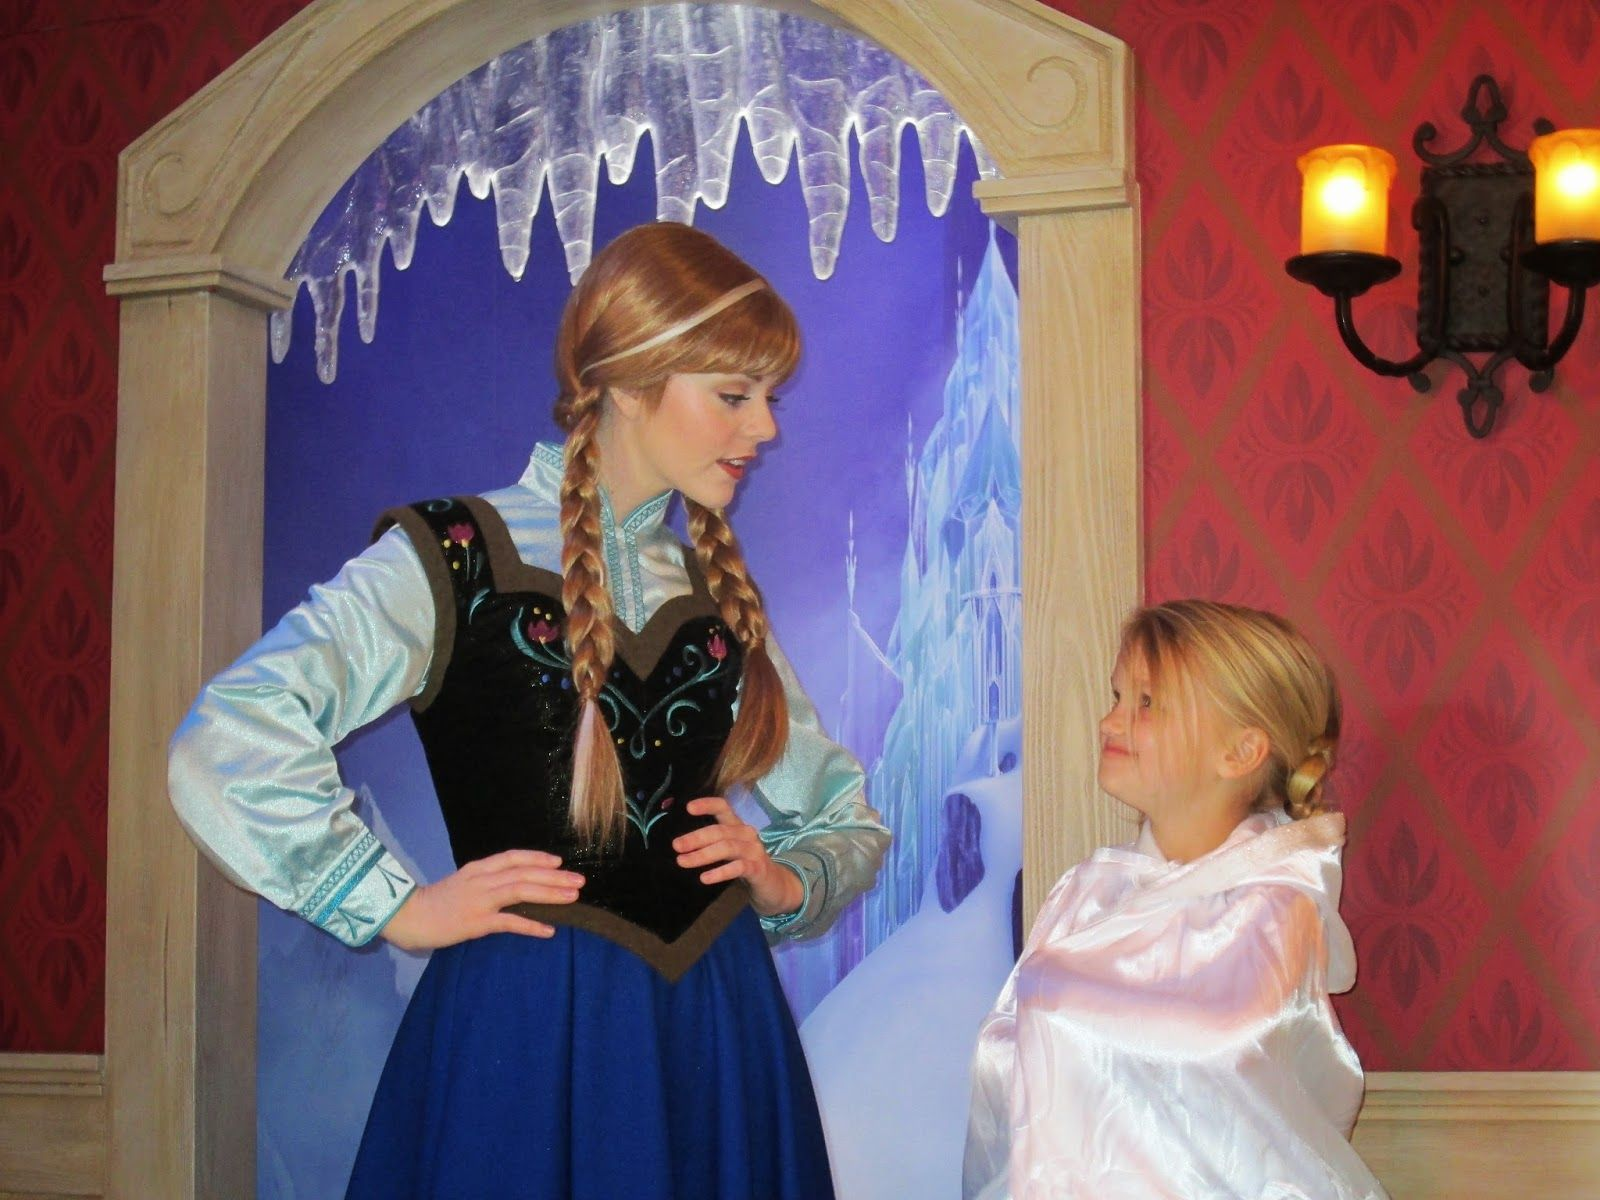 Frozen live at the hyperion theater how to meet anna and elsa frozen live at the hyperion theater how to meet anna and elsa m4hsunfo